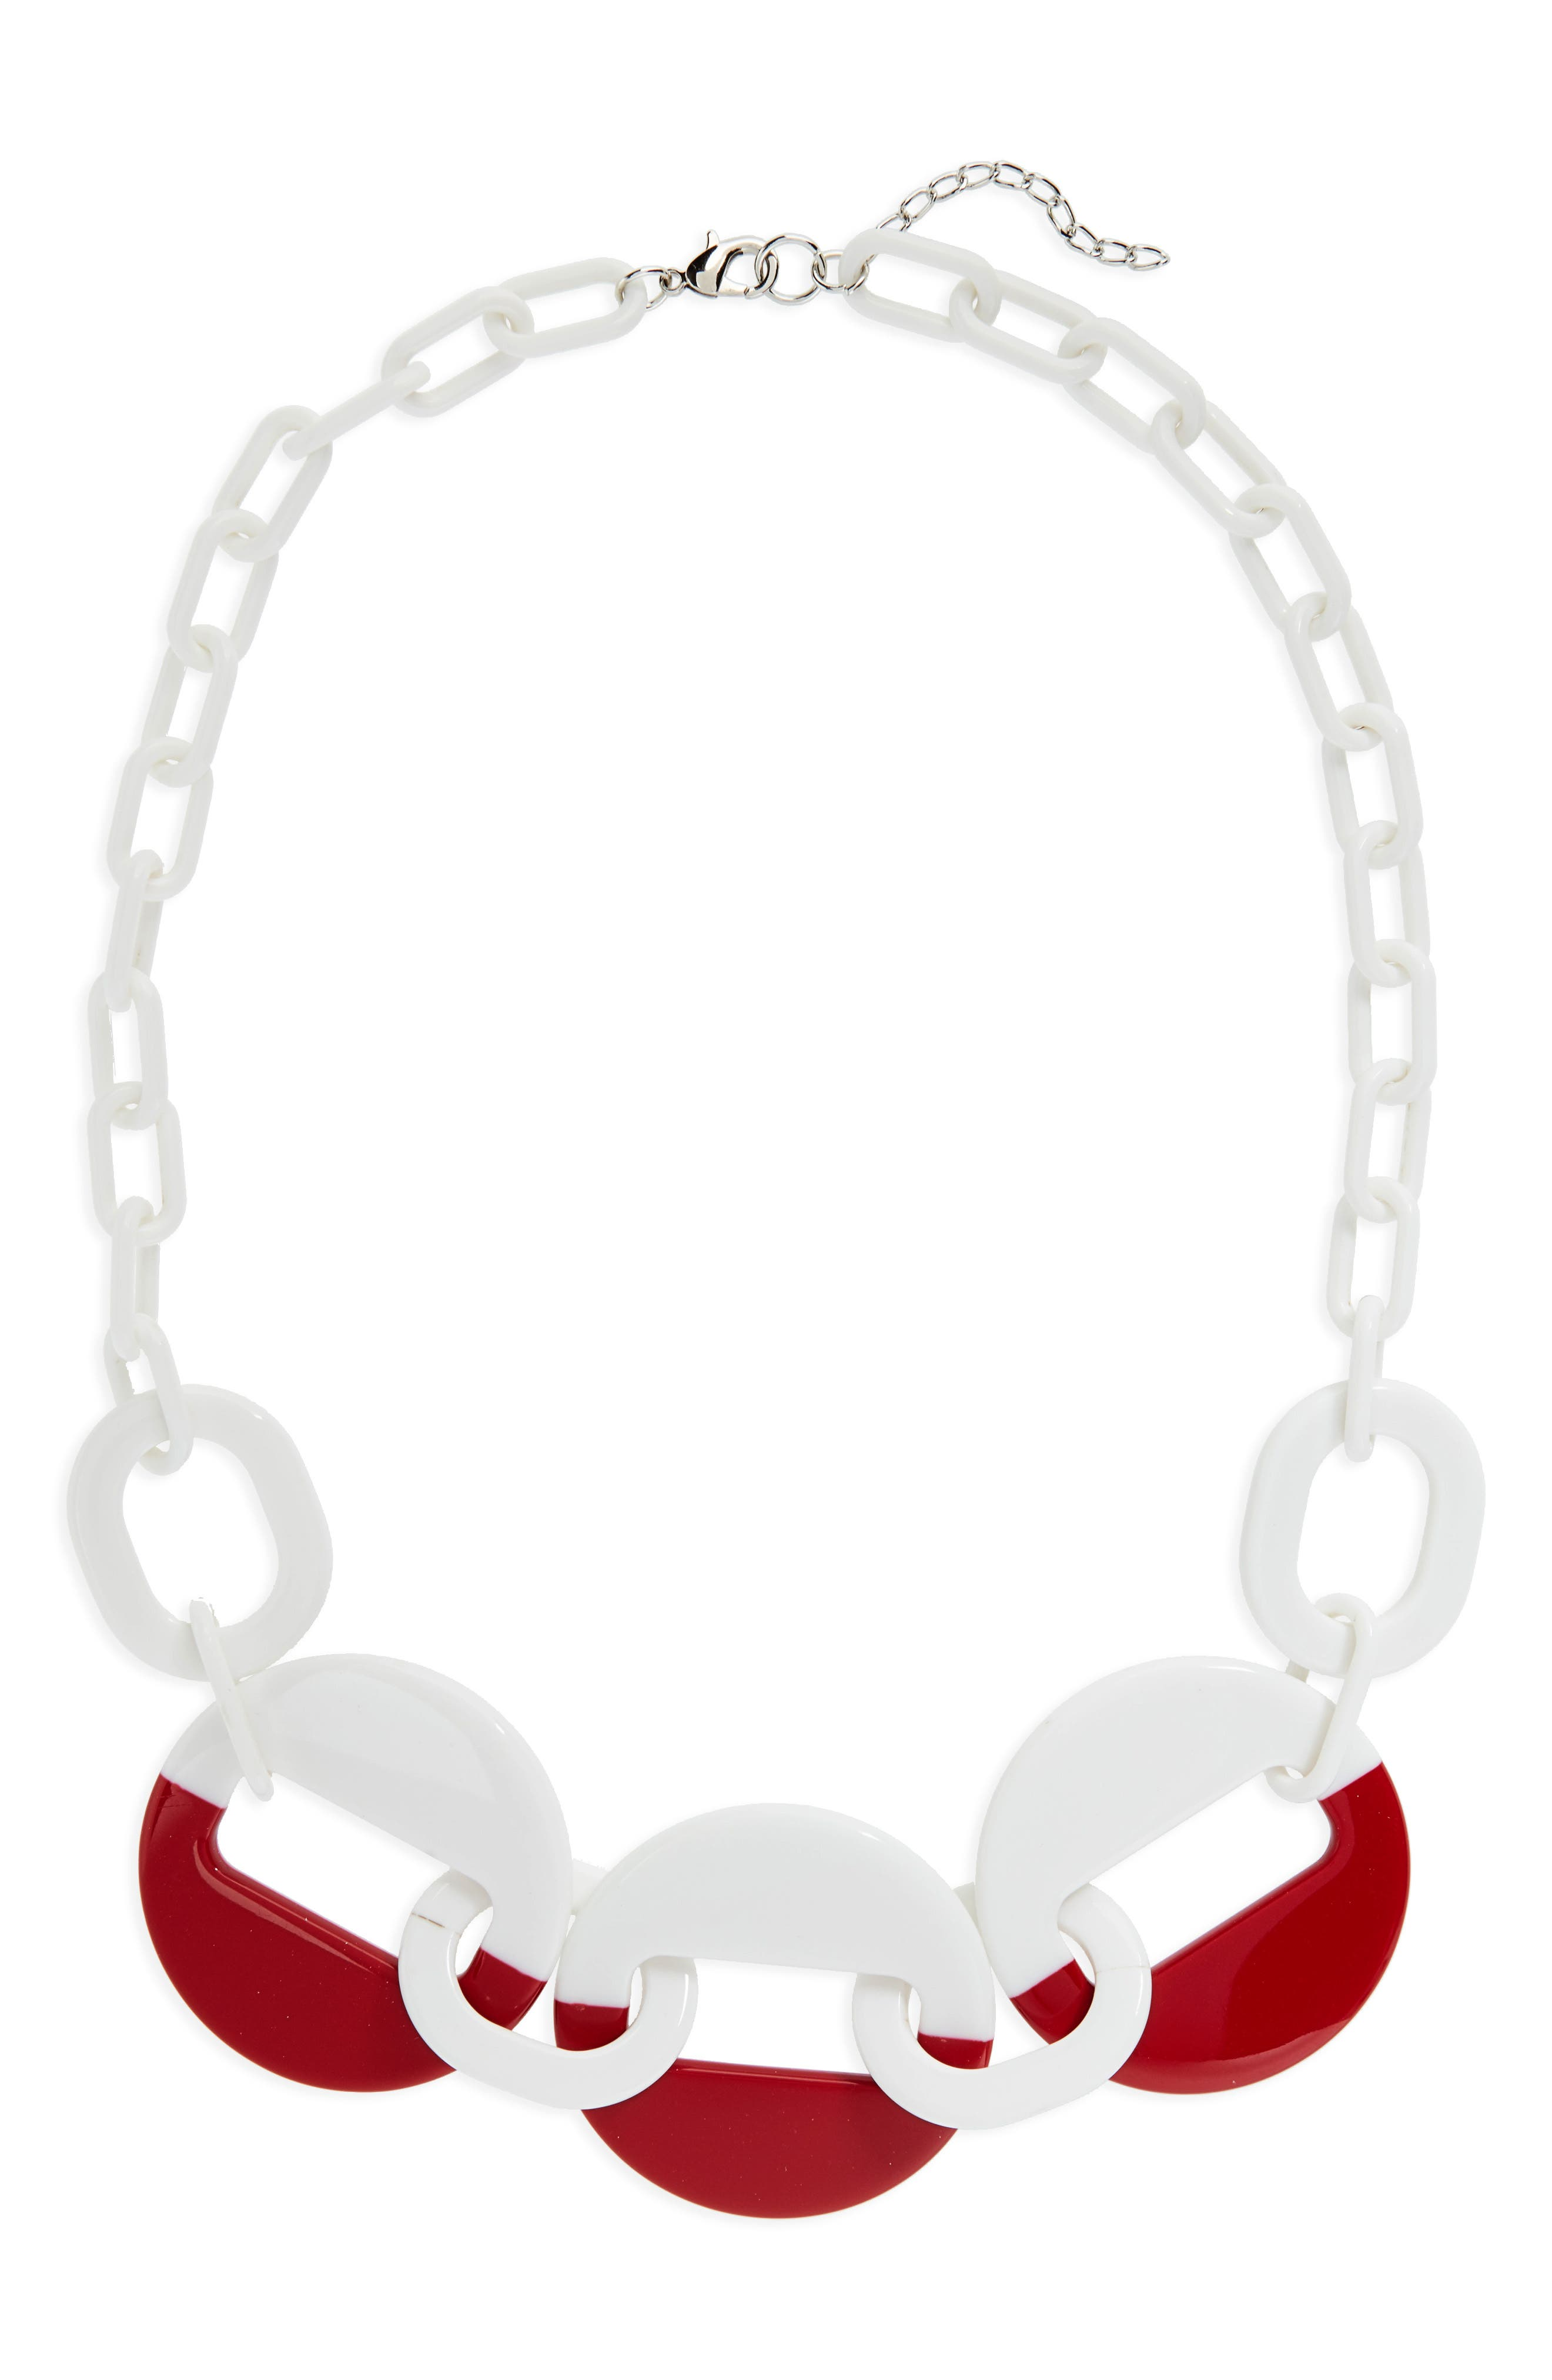 Resin Link Necklace,                             Main thumbnail 1, color,                             White/ Red